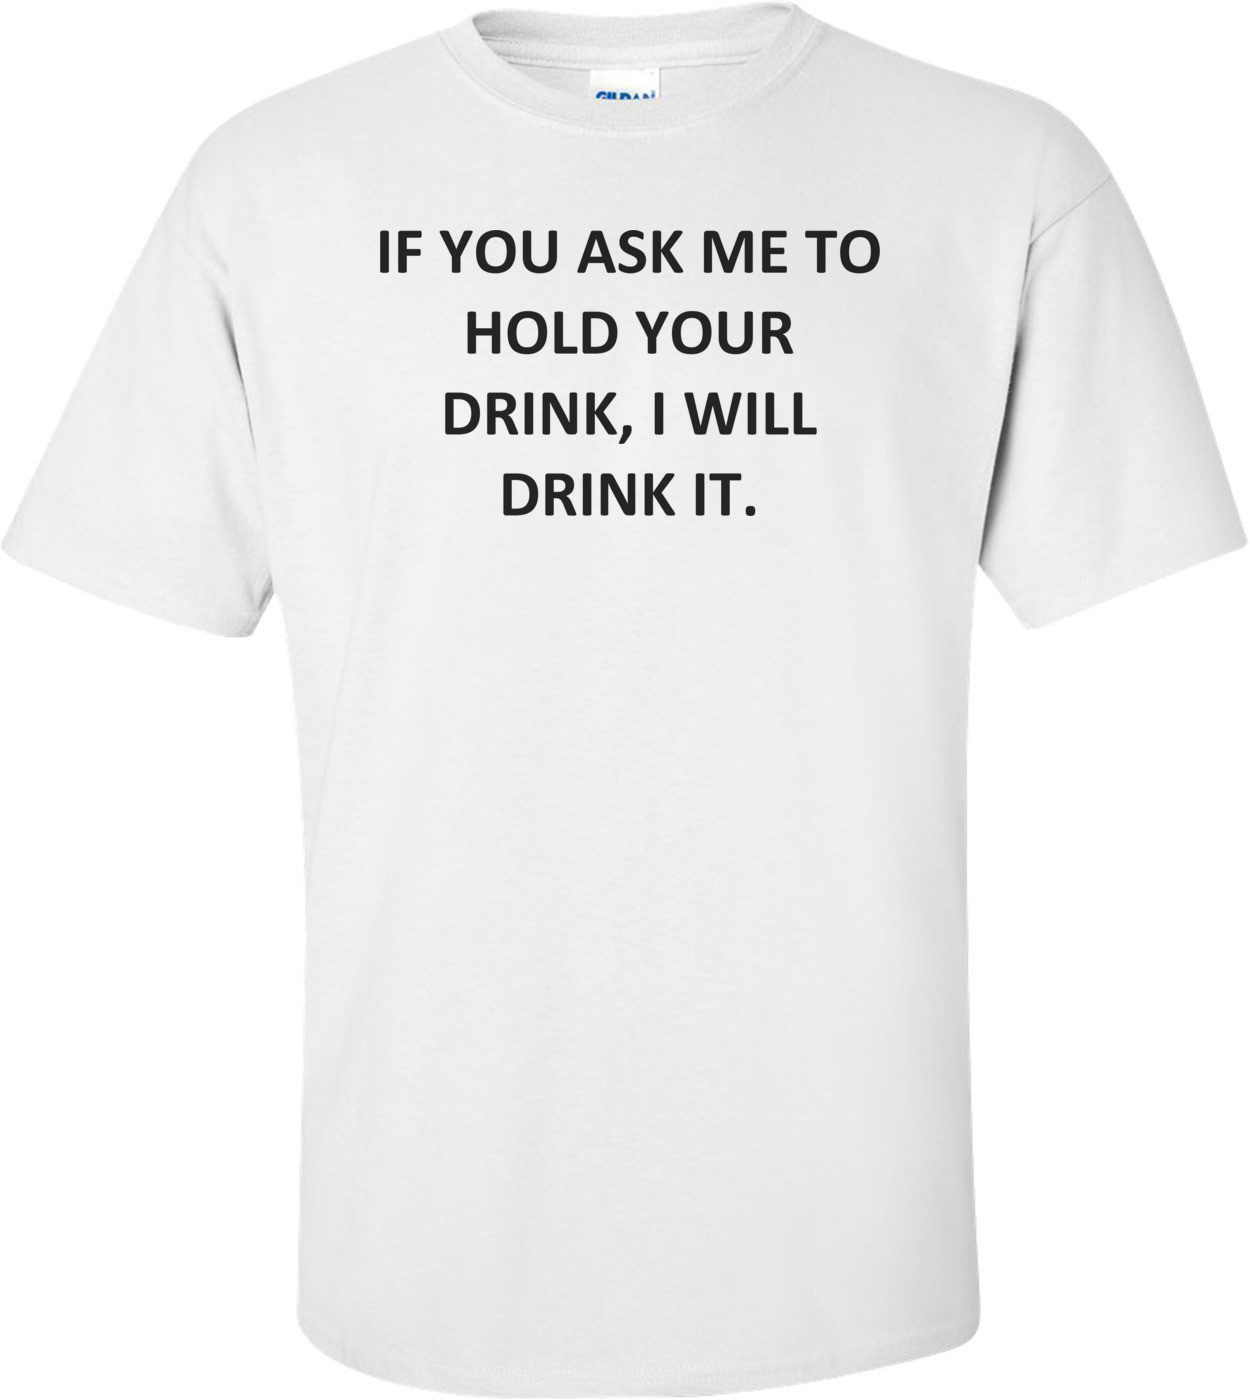 IF YOU ASK ME TO HOLD YOUR DRINK, I WILL DRINK IT. Shirt